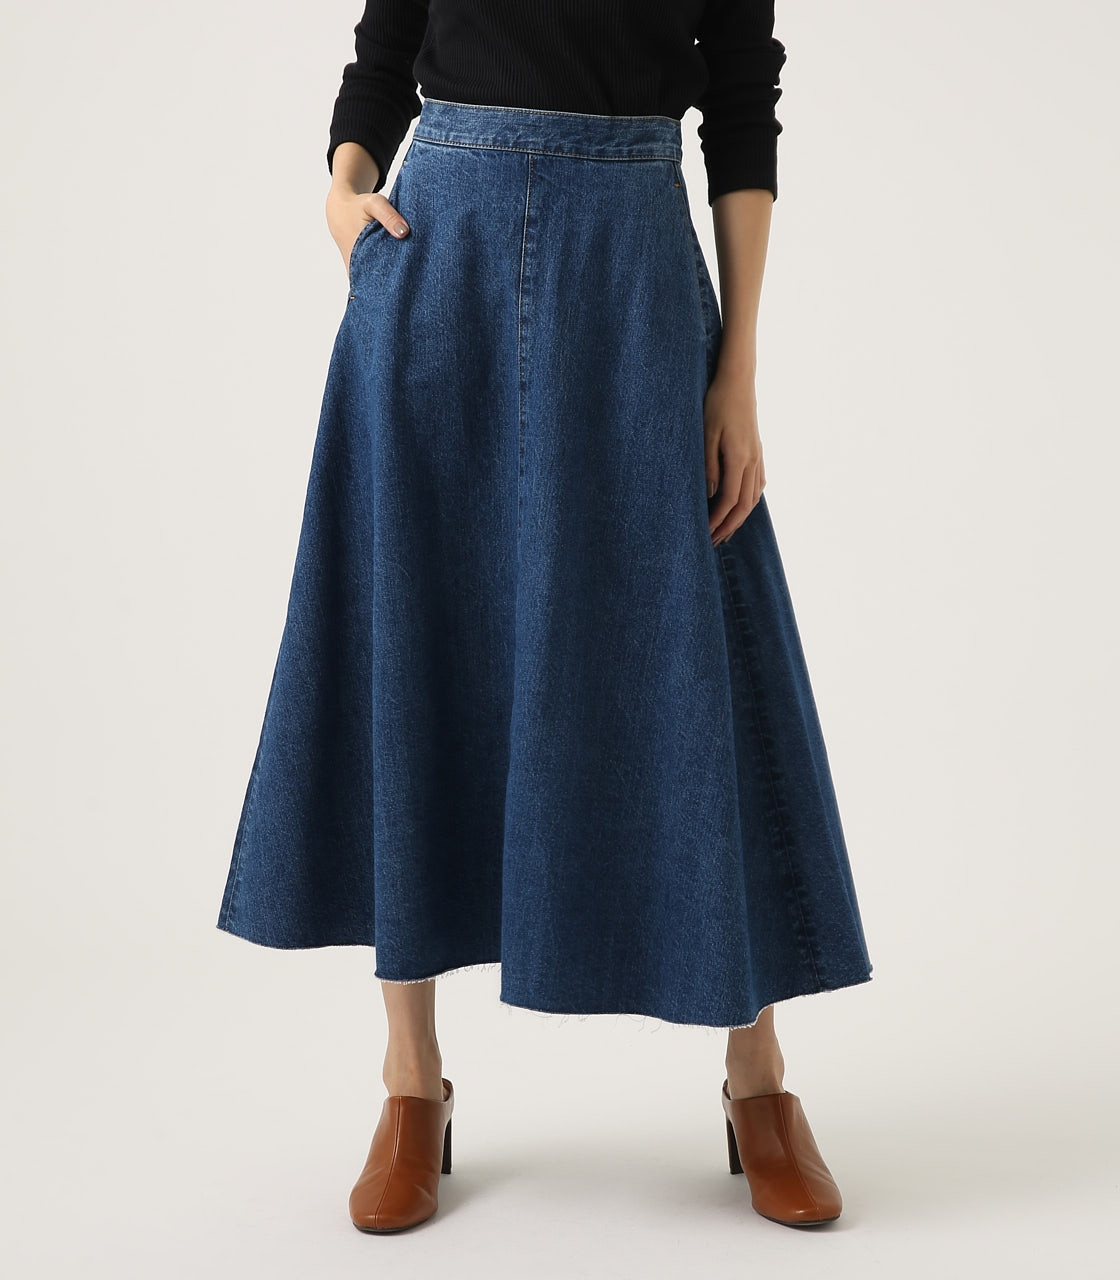 CUT OFF FLARE DENIM LONG SKIRT 詳細画像 BLU 1